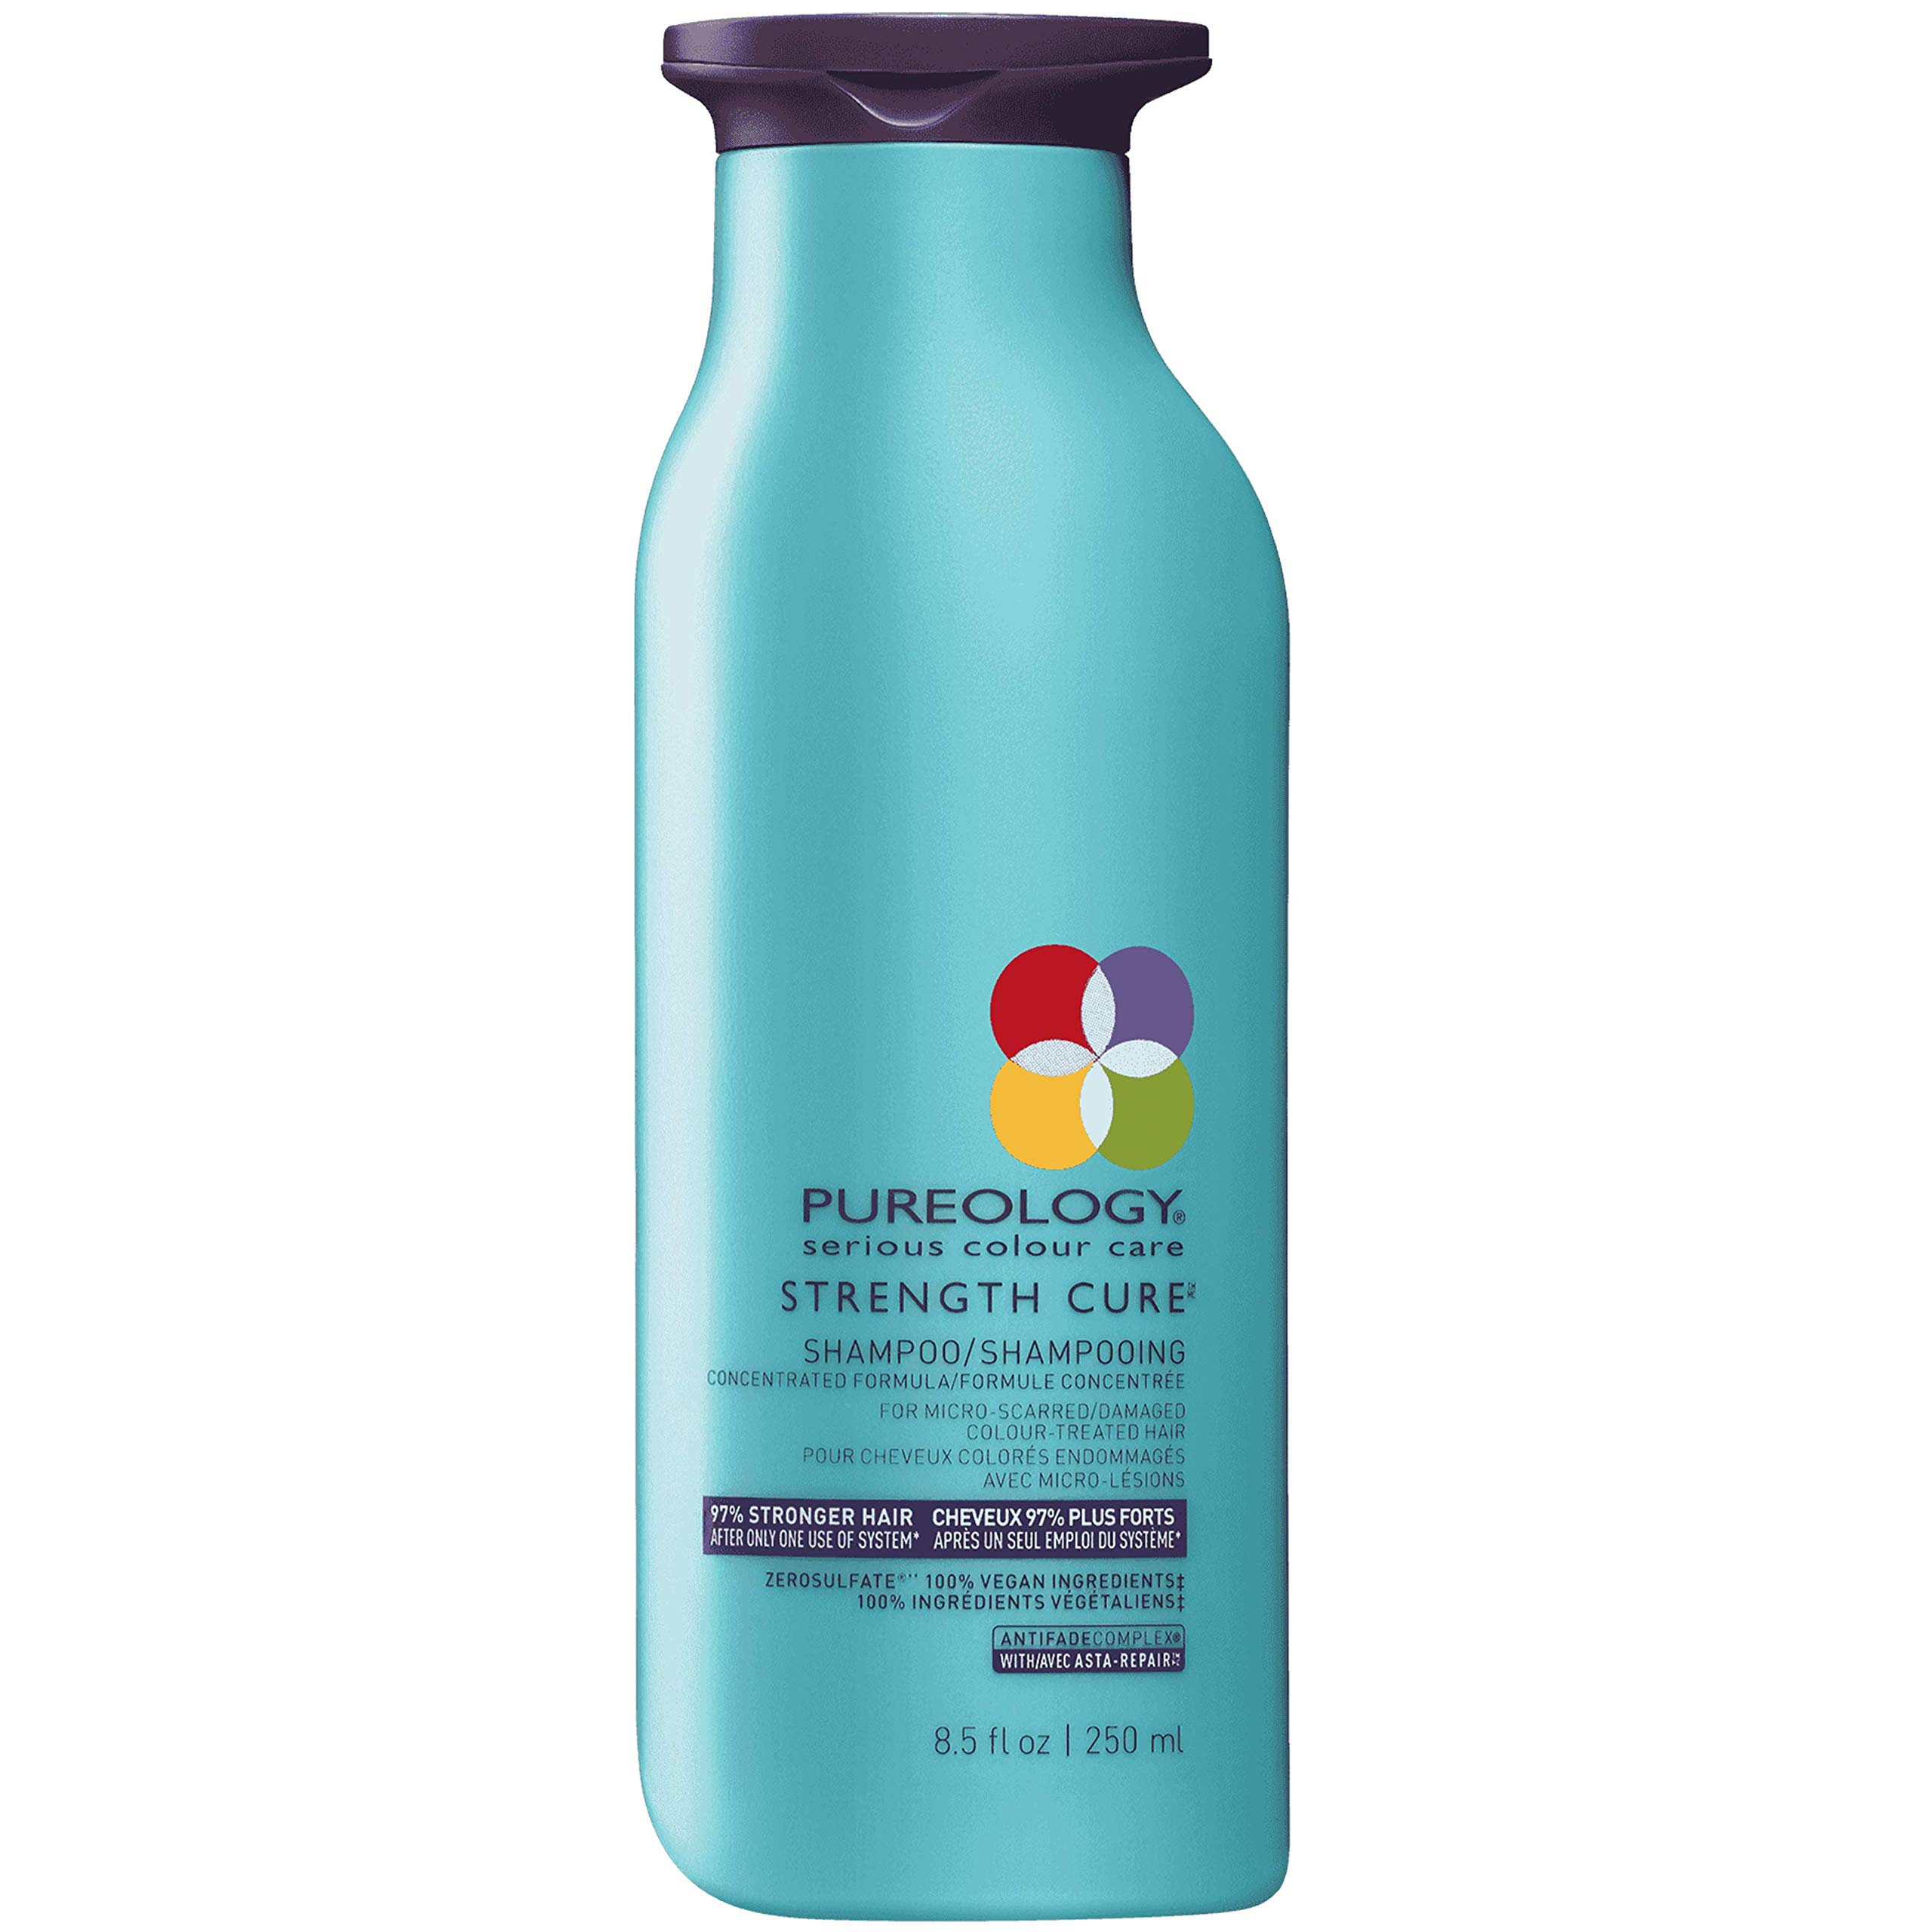 Pureology Strength Cure Sulfate Free Shampoo for Damaged Hair, 8.5 oz. by Pureology